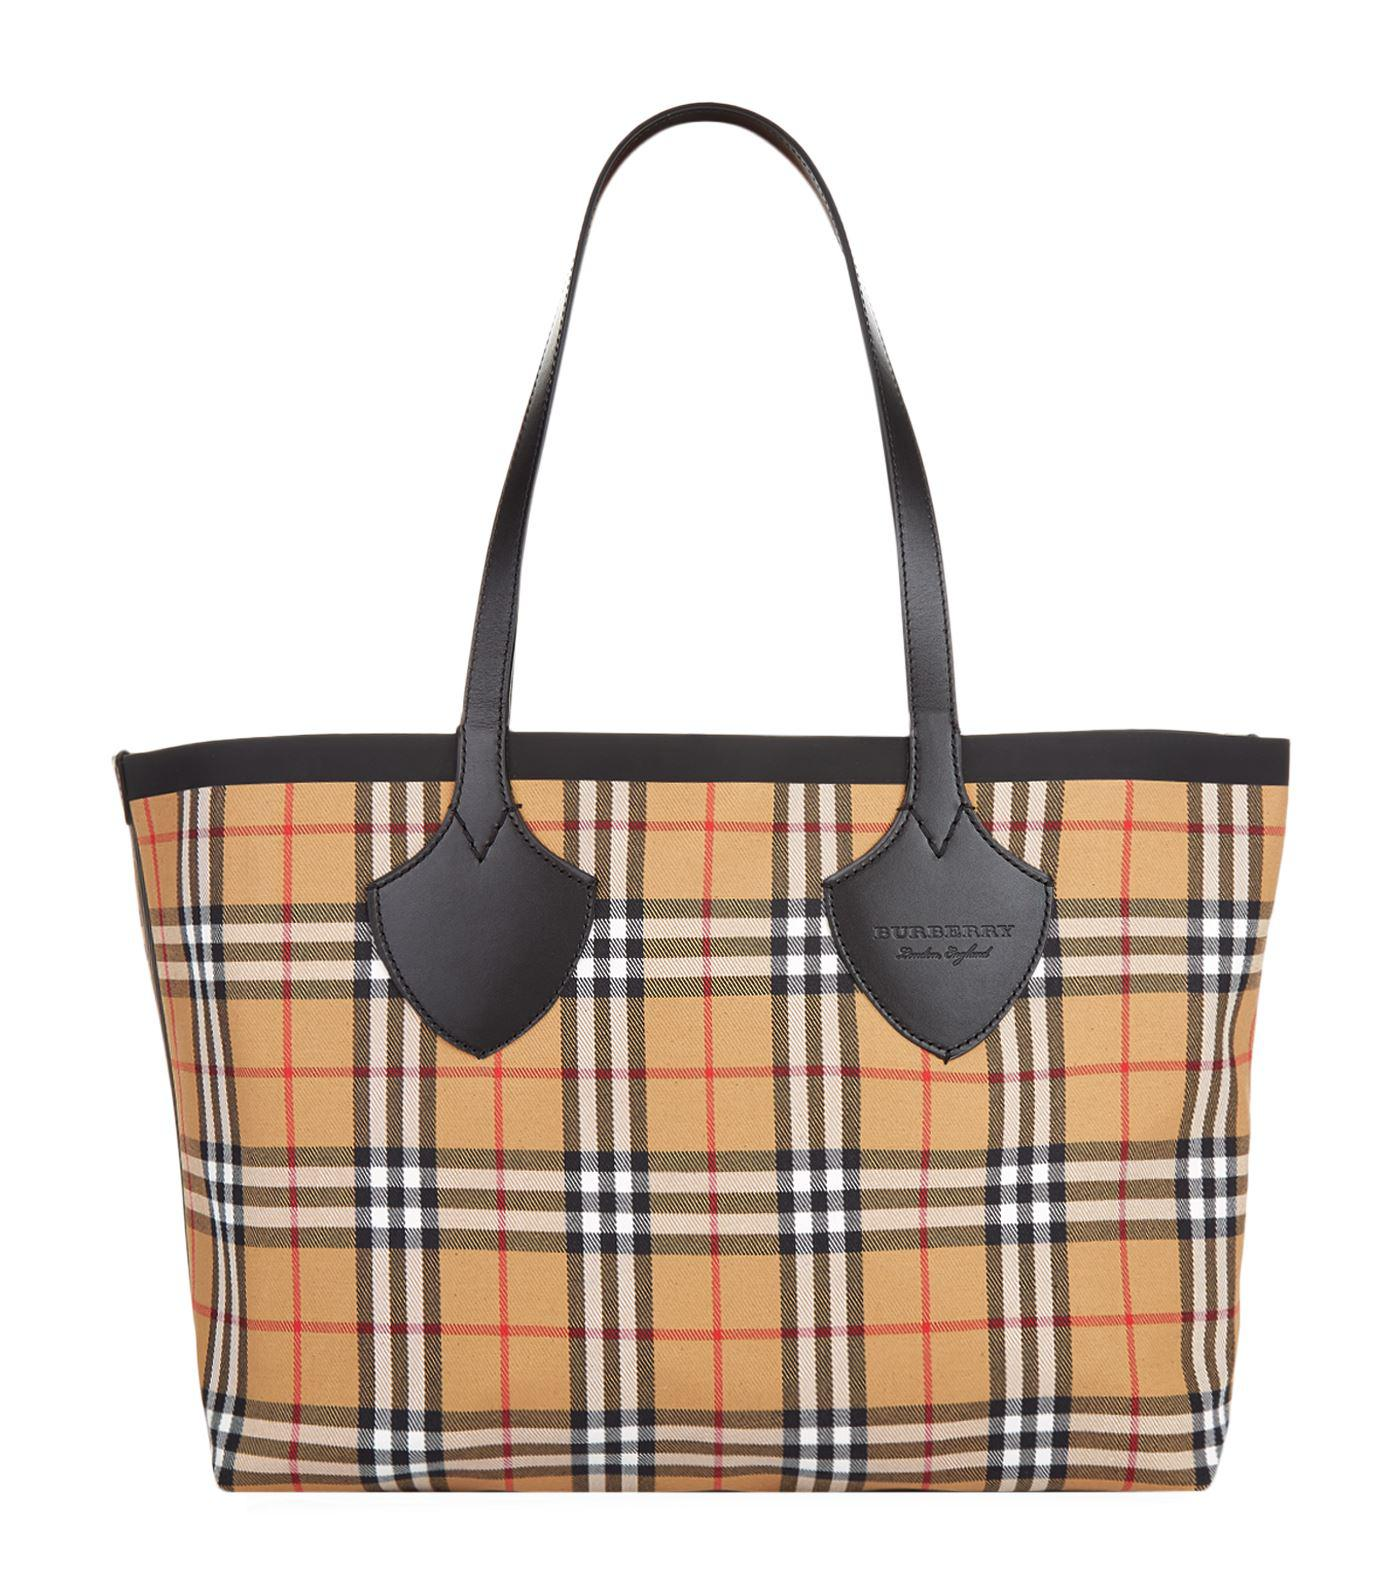 Burberry Medium Giant Plastic Vintage Check Tote in Yellow - Lyst 30c97ce3cf